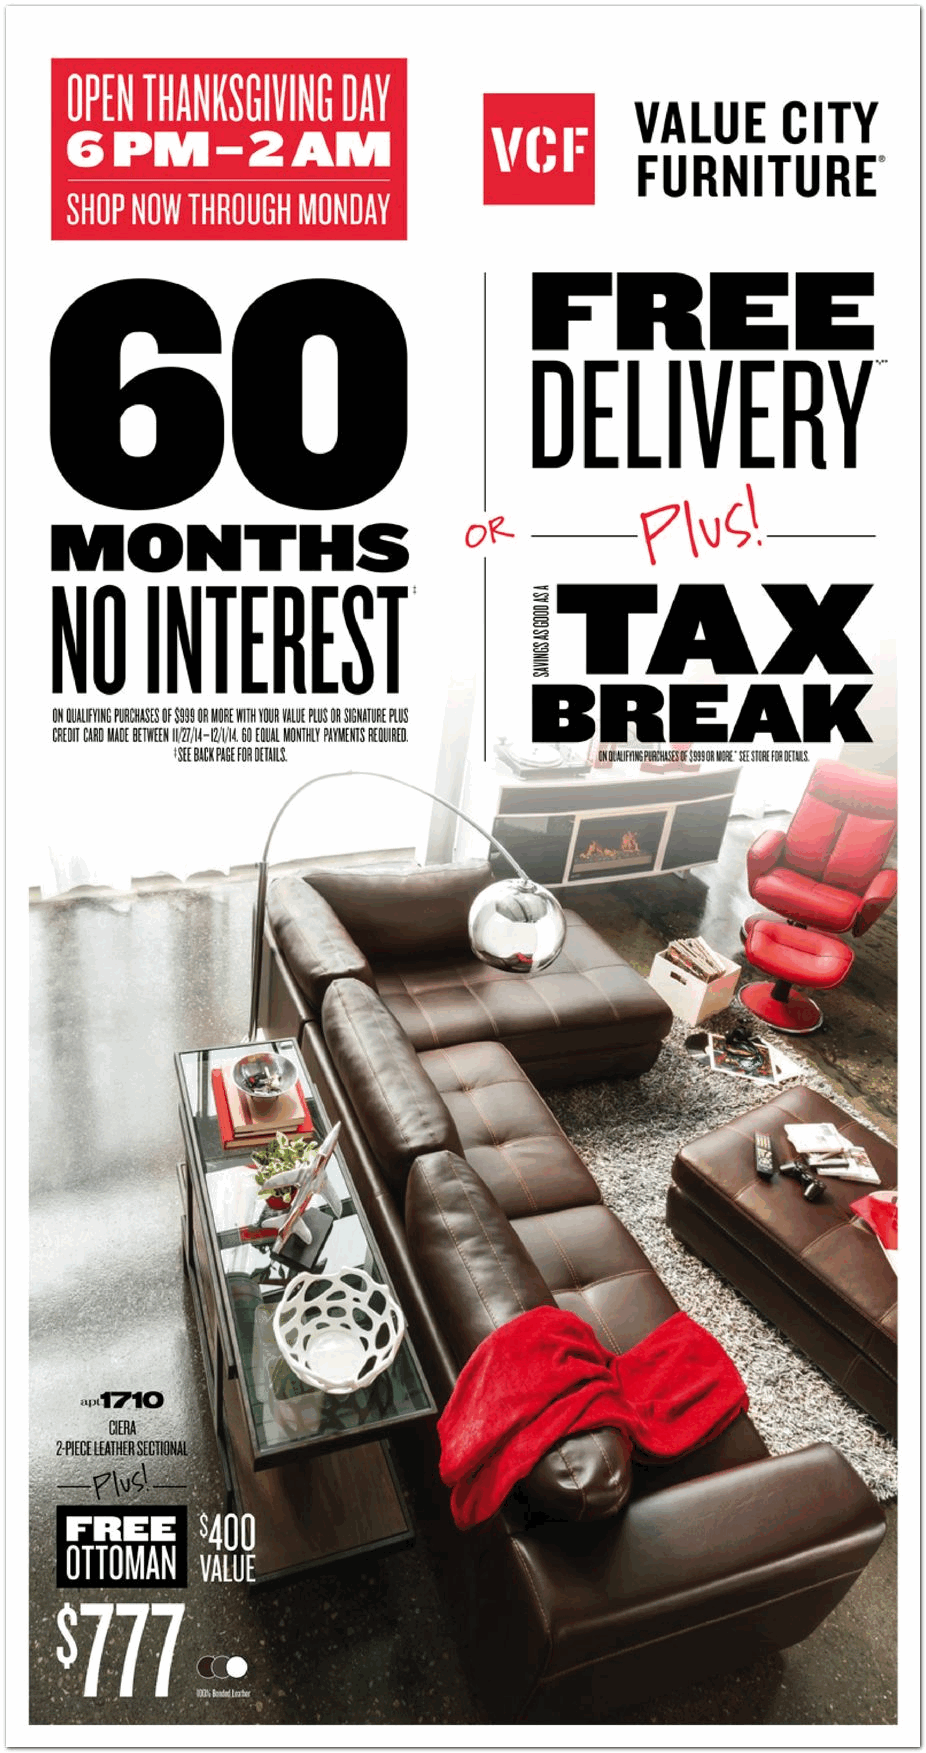 Value City Furniture 2014 Black Friday Ad